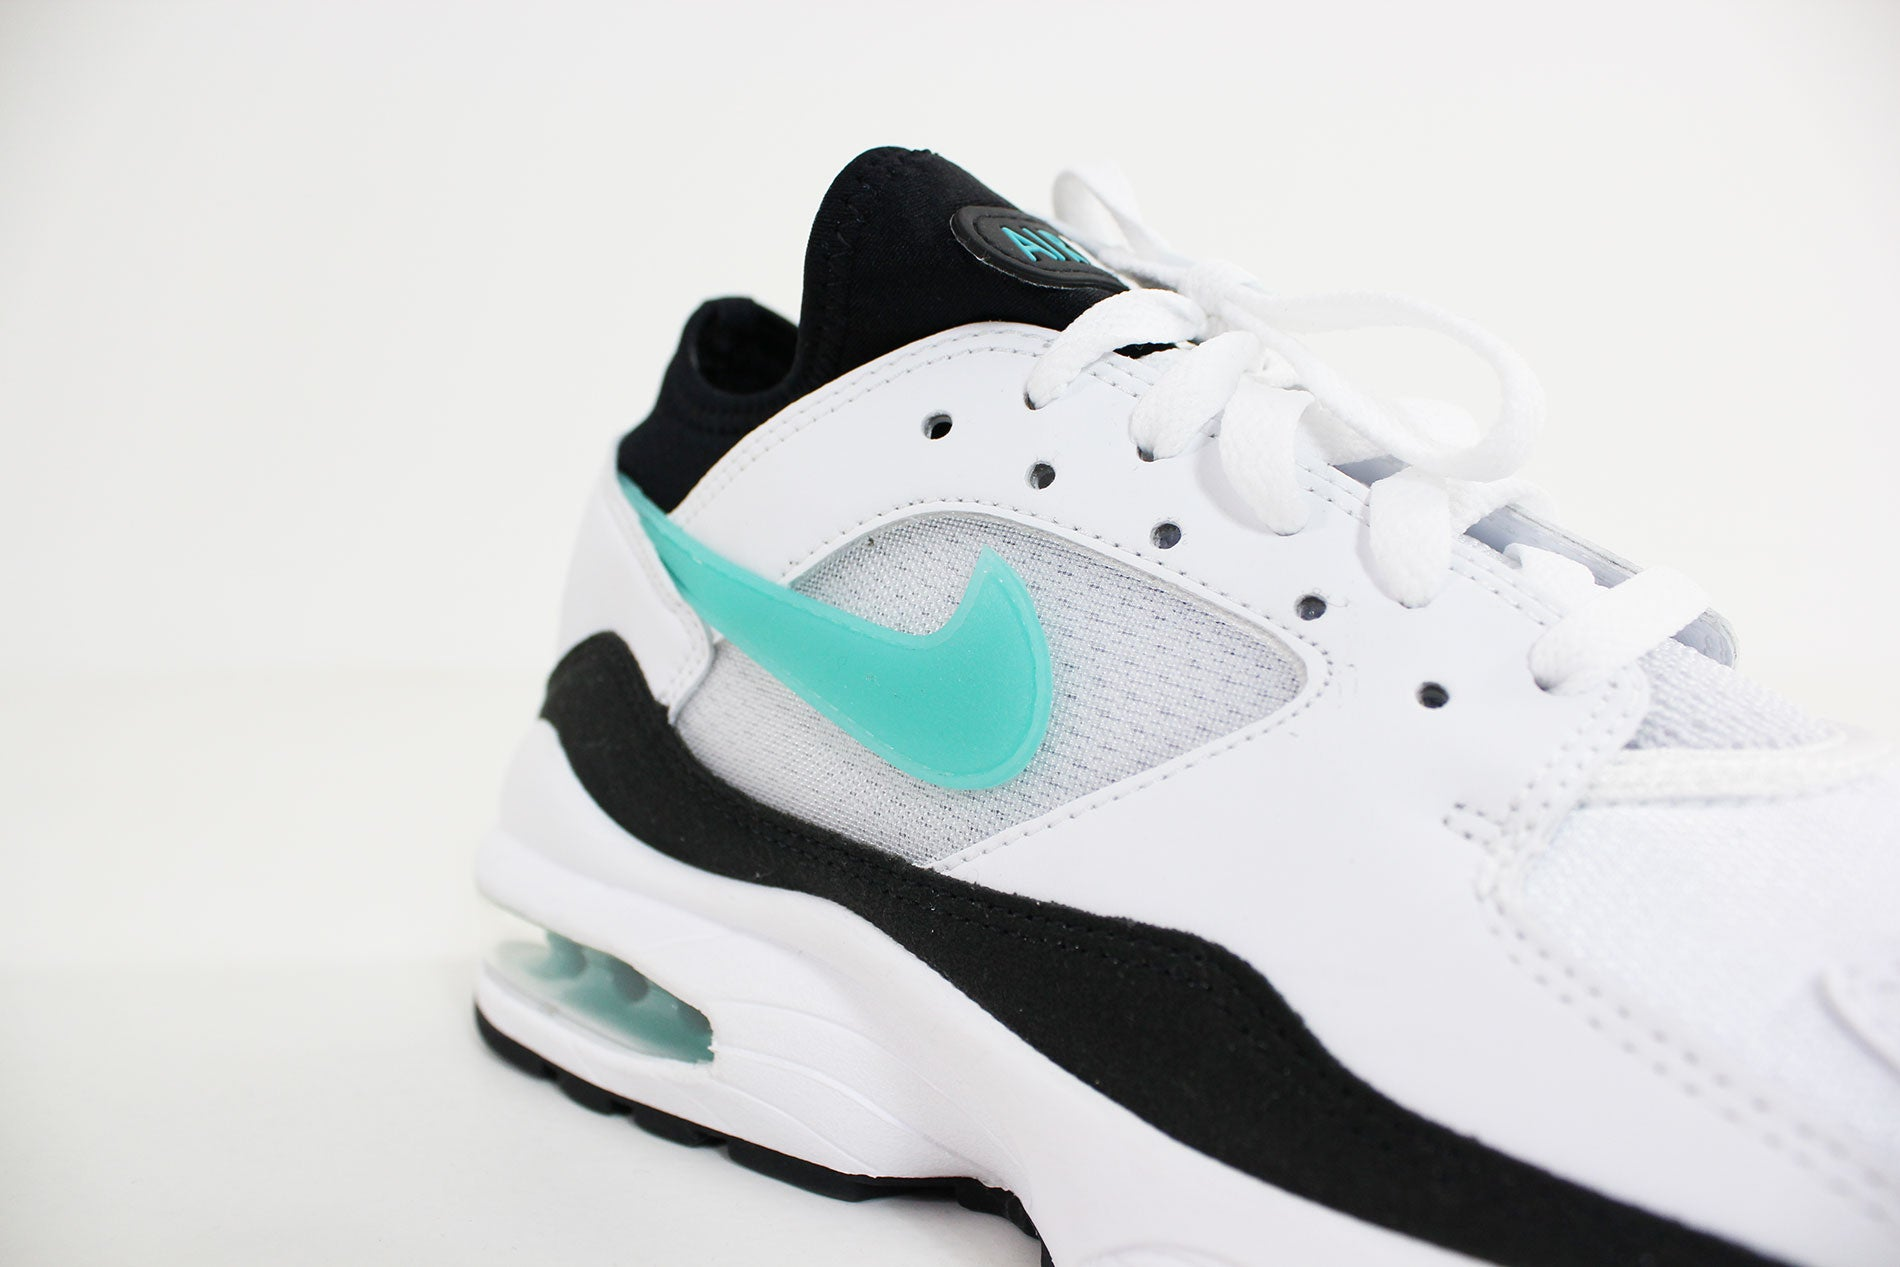 b19fc754c9 Nike - Air Max 93 (White/ Sport Turq-Black) 306551-107 - Sneakerworld